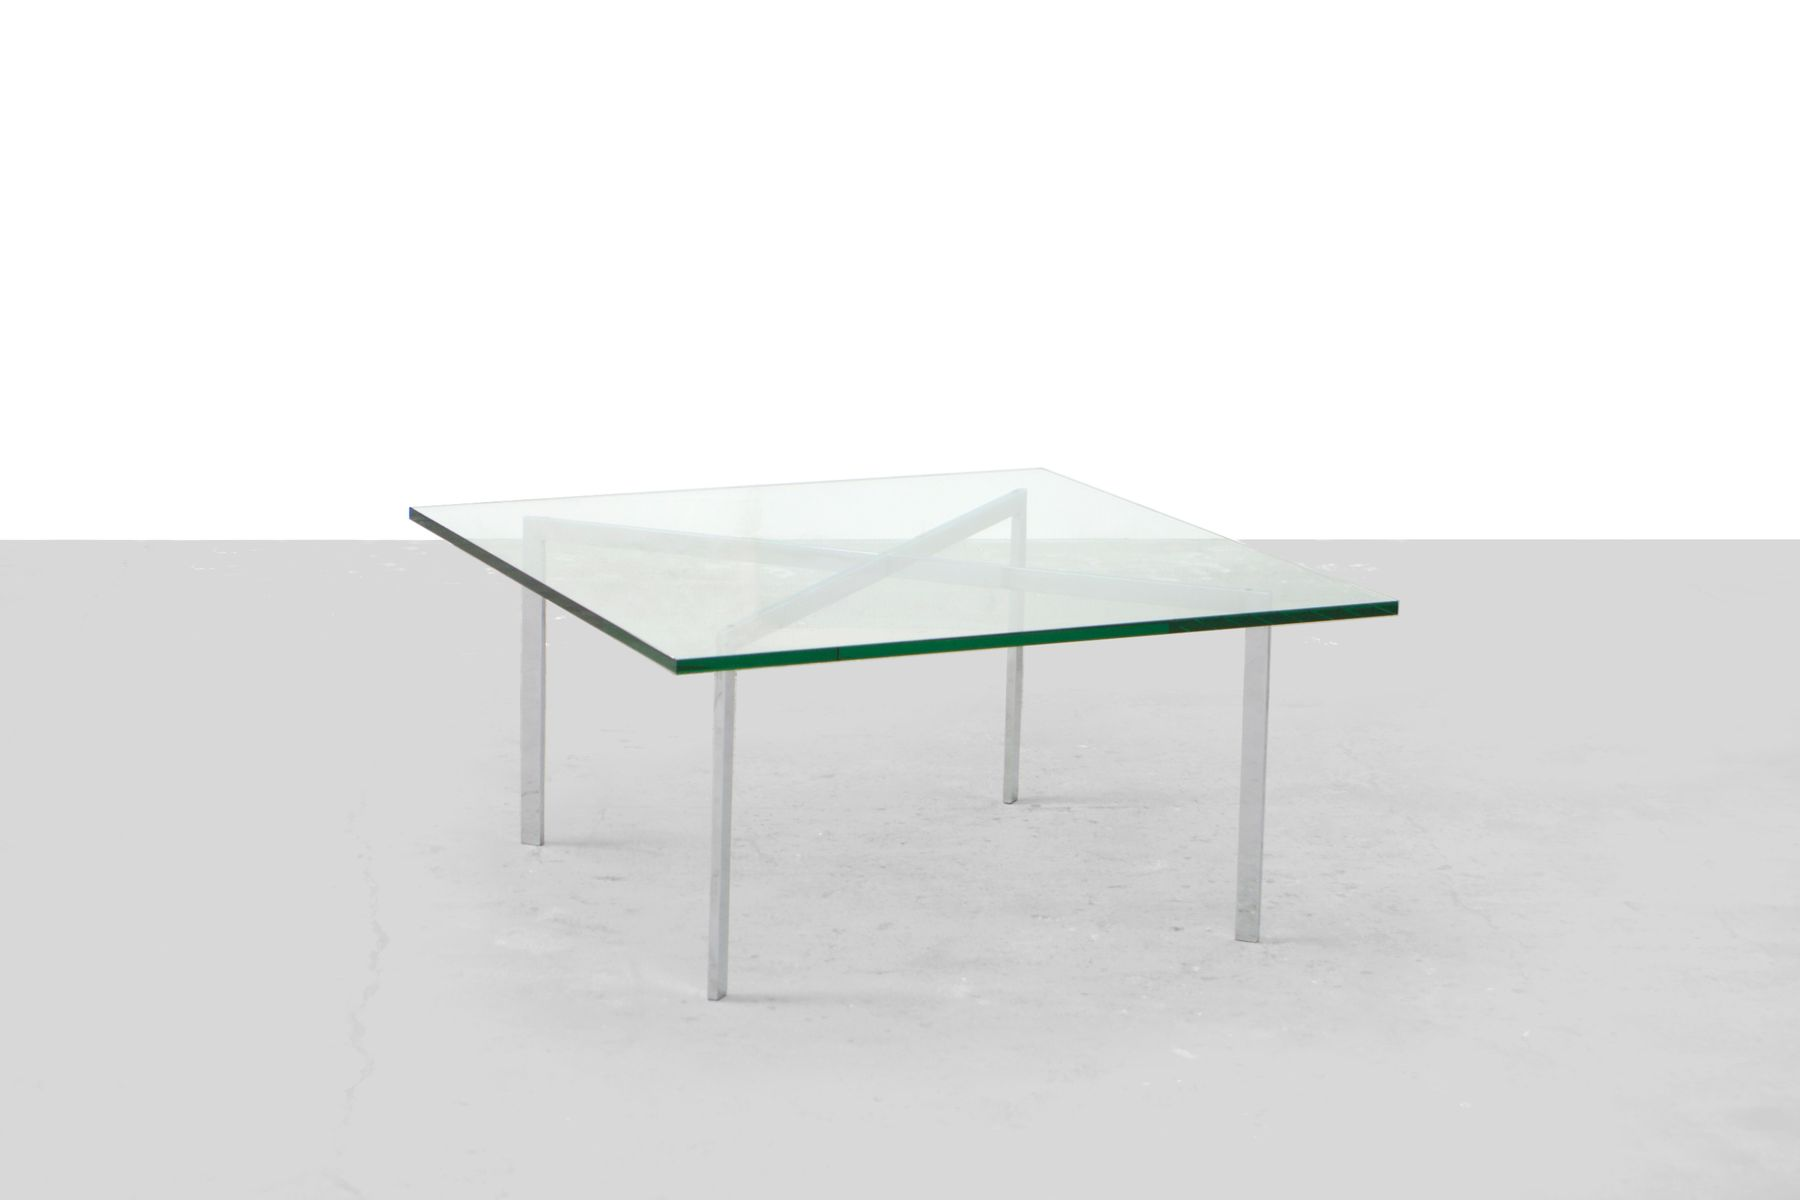 glass coffee table by mies van der rohe for knoll 1960. Black Bedroom Furniture Sets. Home Design Ideas